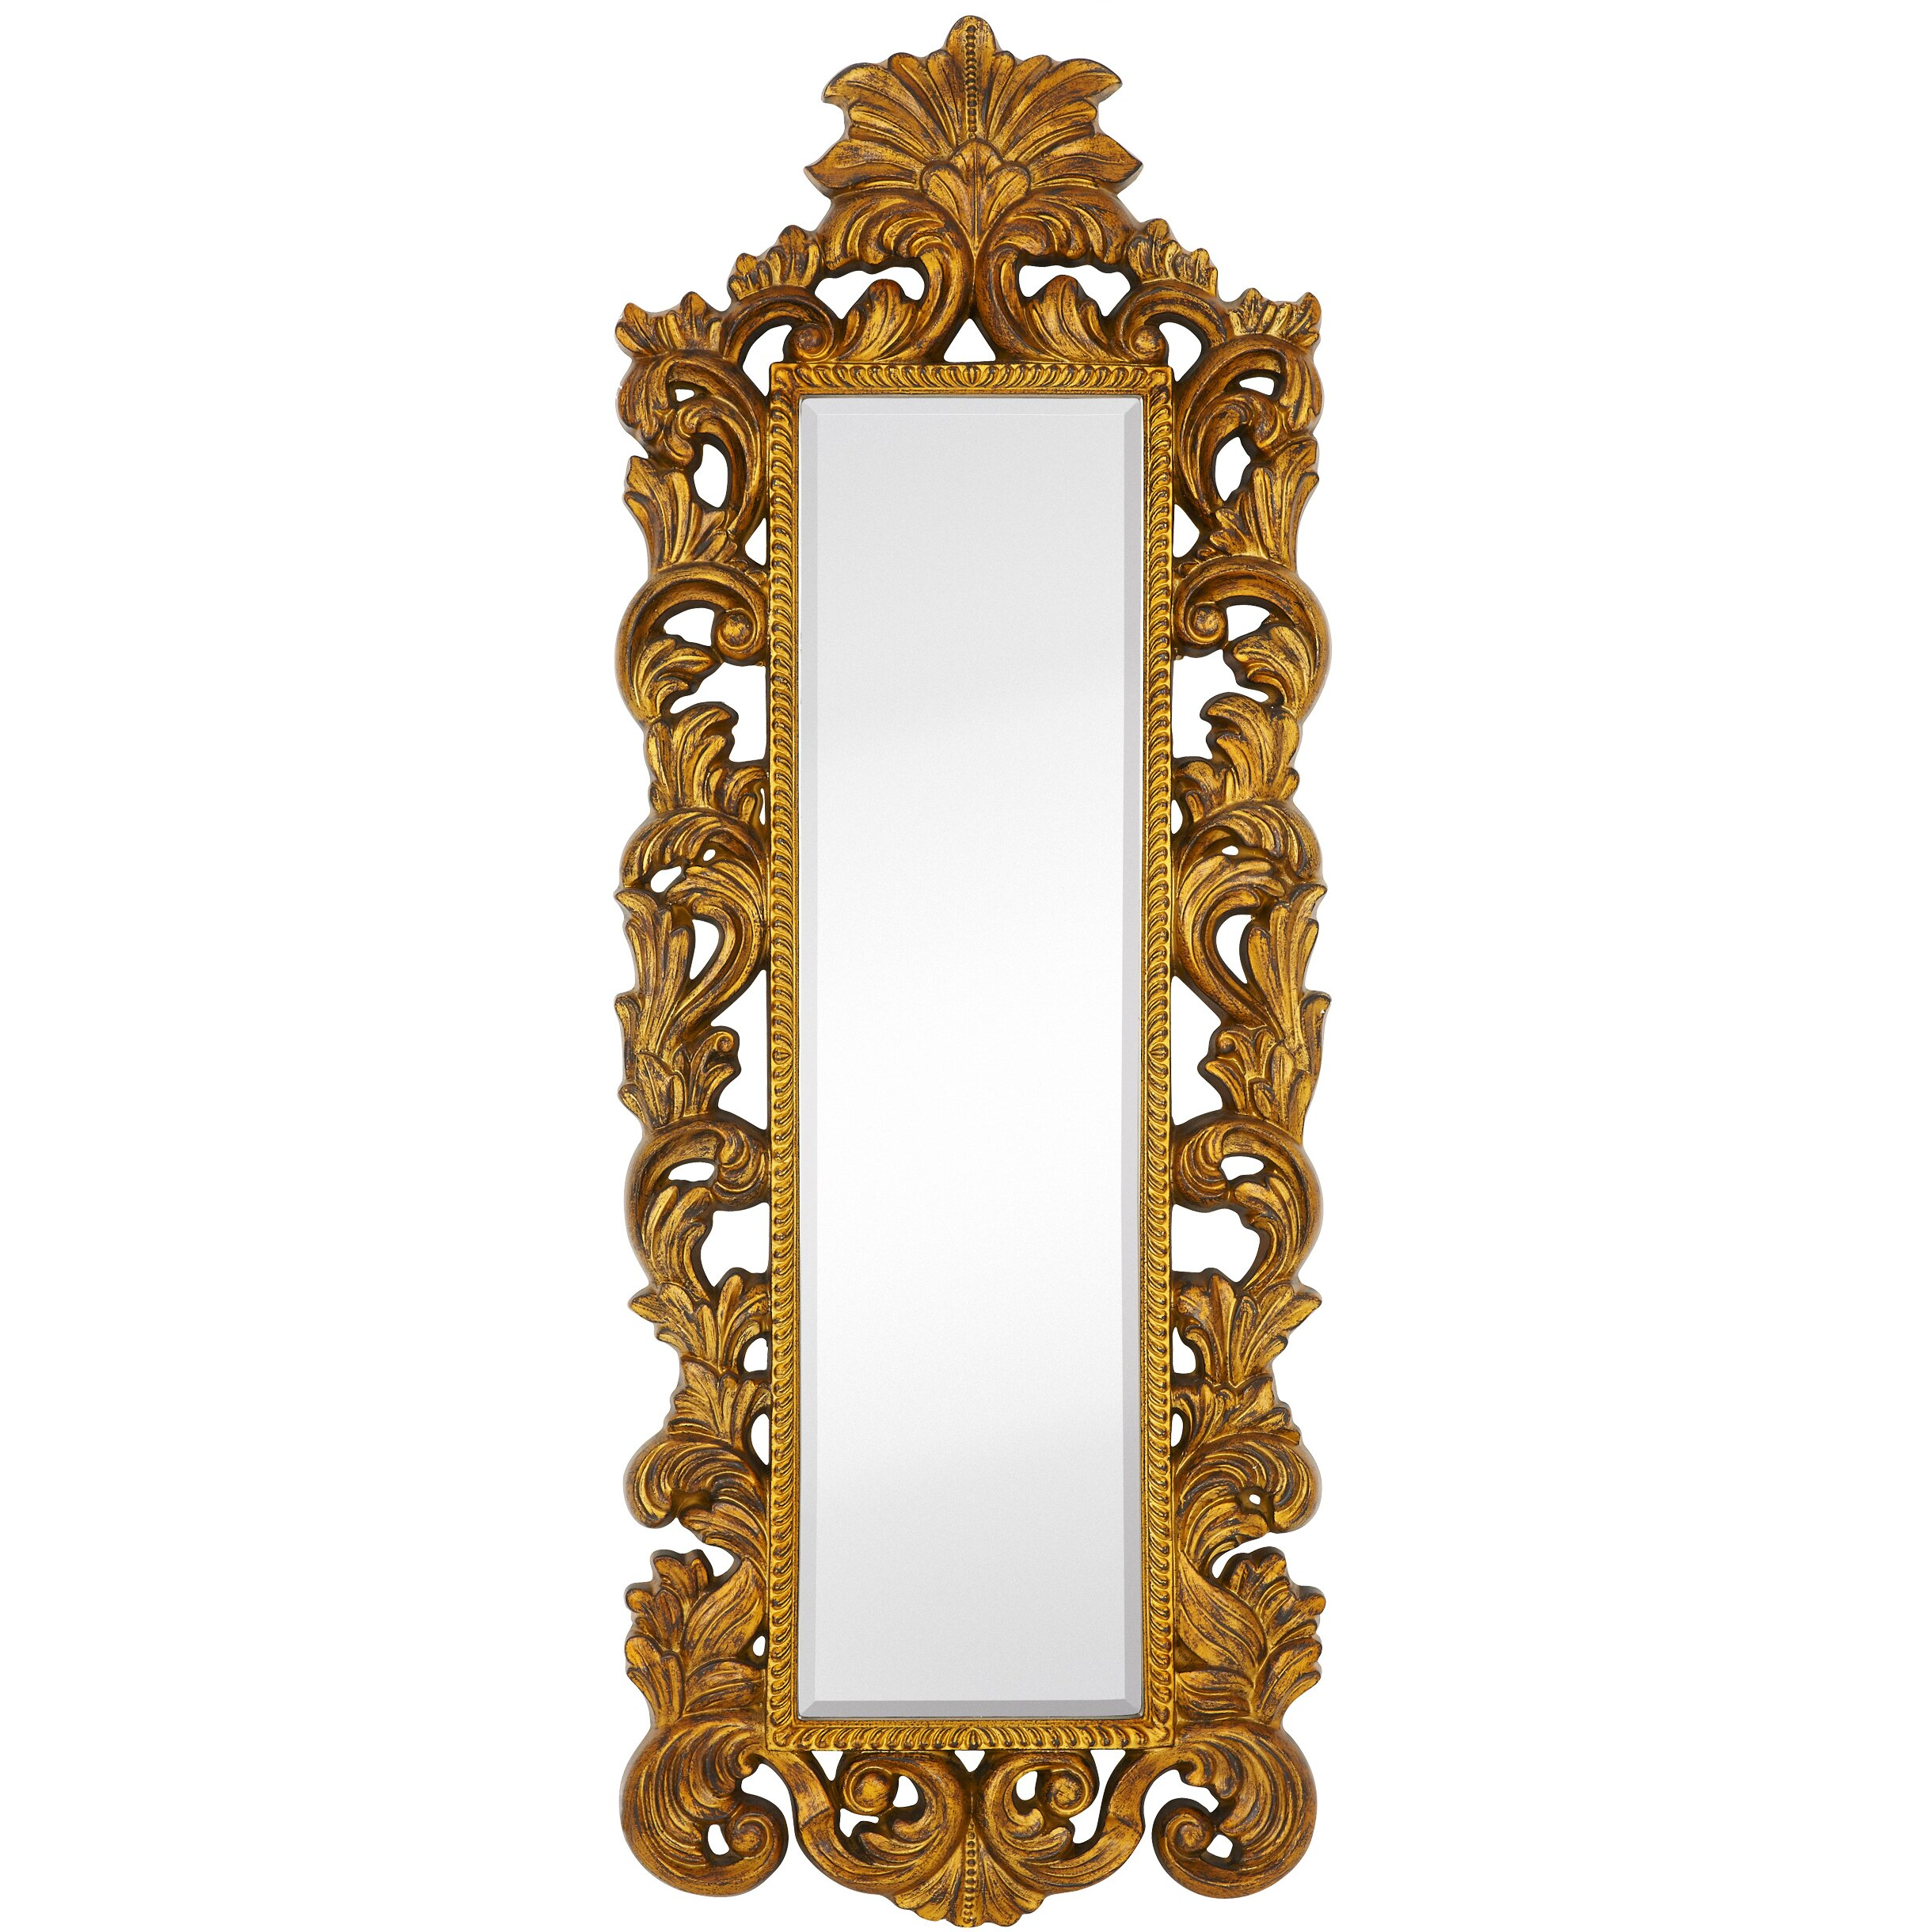 Majestic mirror tall narrow mirror leaf with black rub for Narrow wall mirror decorative